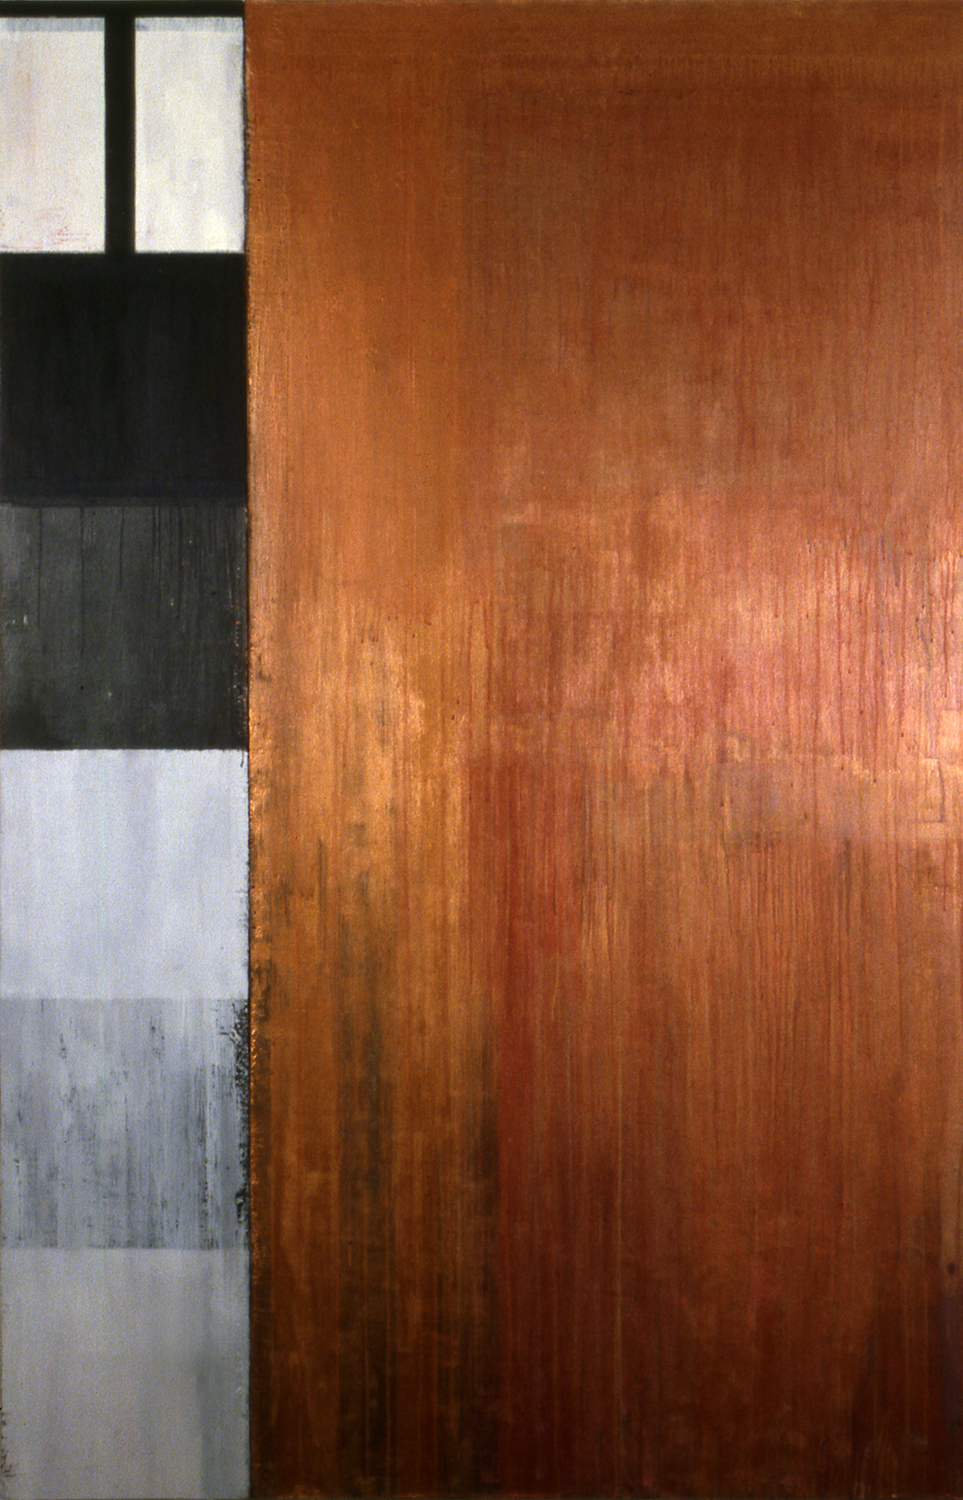 Station, 1993, Oil, acrylic on canvas over panels, 72 x 48 inches.